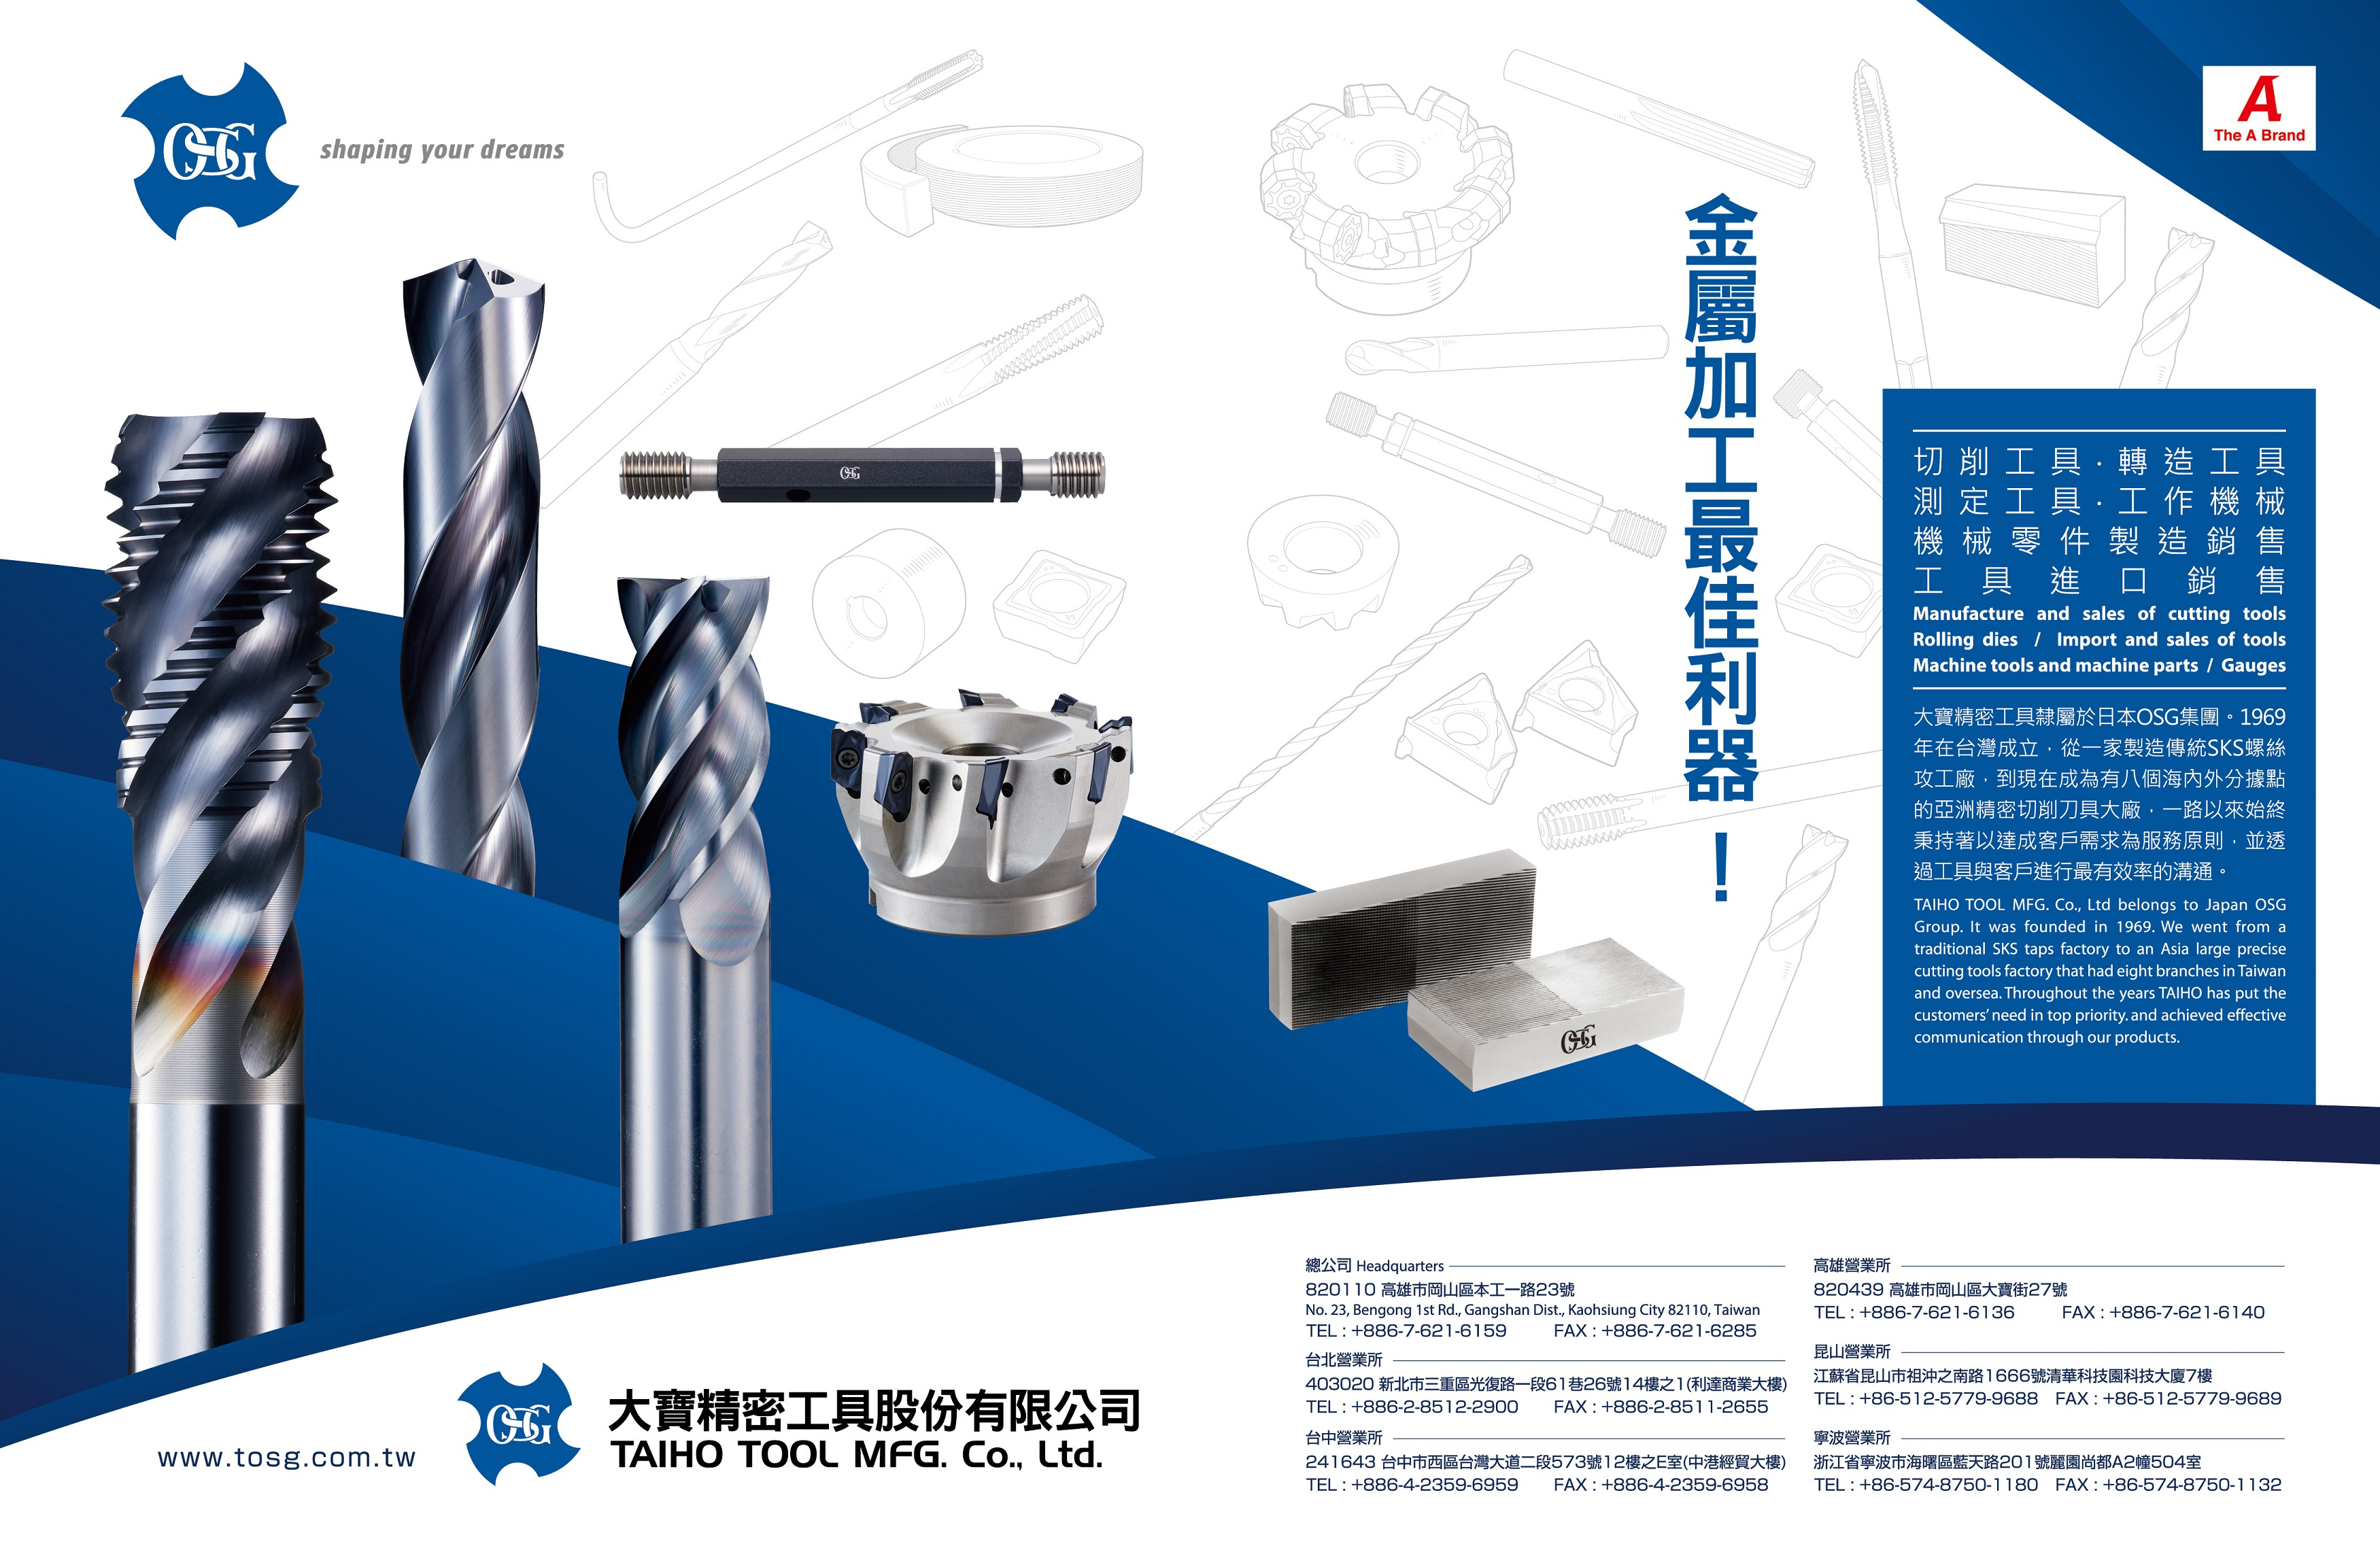 TAIHO TOOL MFG. CO., LTD.